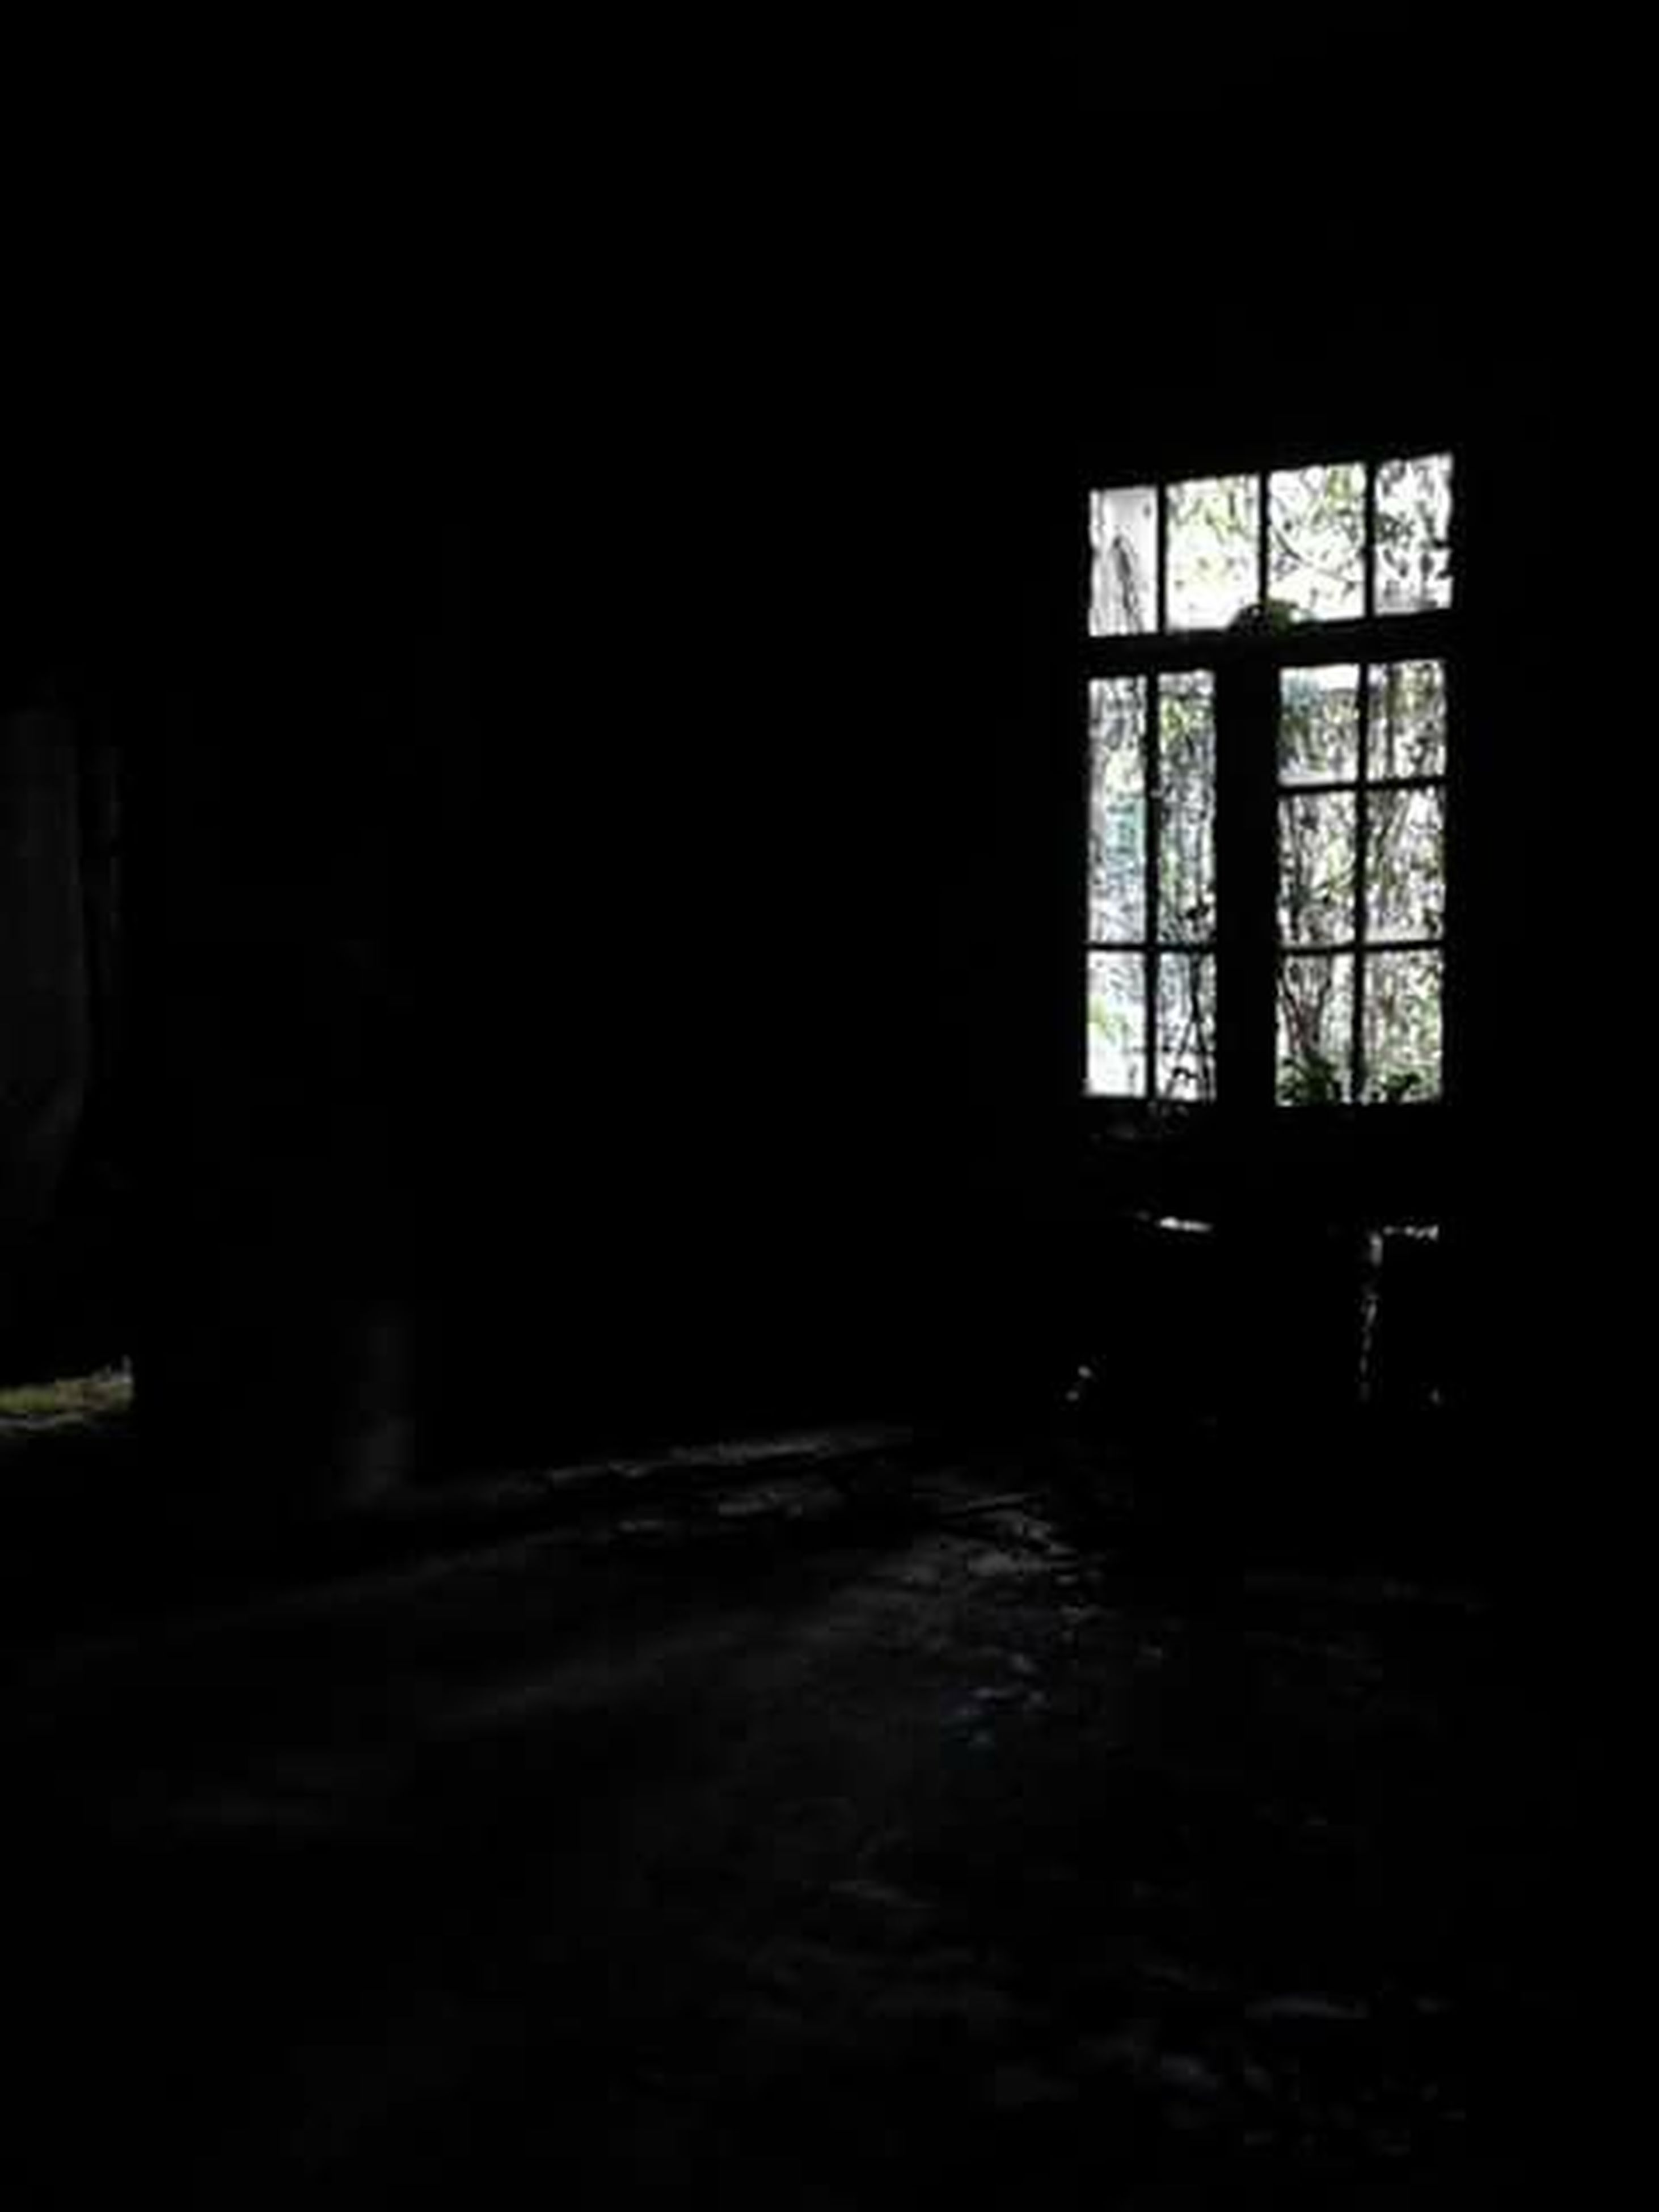 indoors, window, architecture, built structure, dark, empty, house, night, illuminated, door, absence, room, copy space, home interior, no people, shadow, sunlight, entrance, abandoned, building